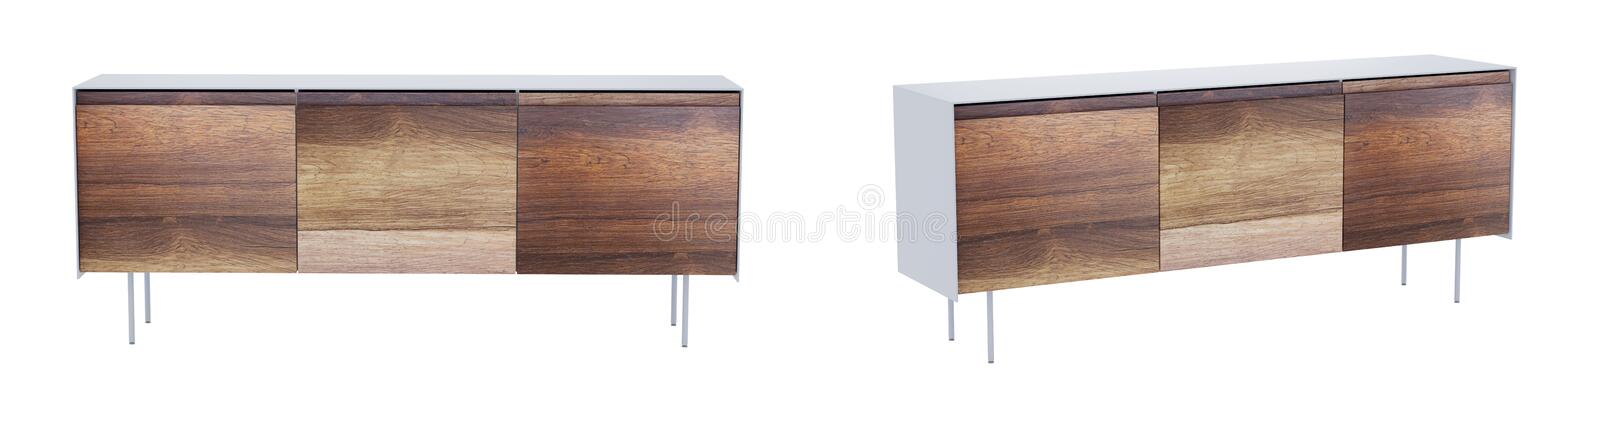 Vintage sideboard isolated on white with clipping path. 3D render. Vintage sideboard isolated on white background with clipping path included. 3D render image royalty free illustration